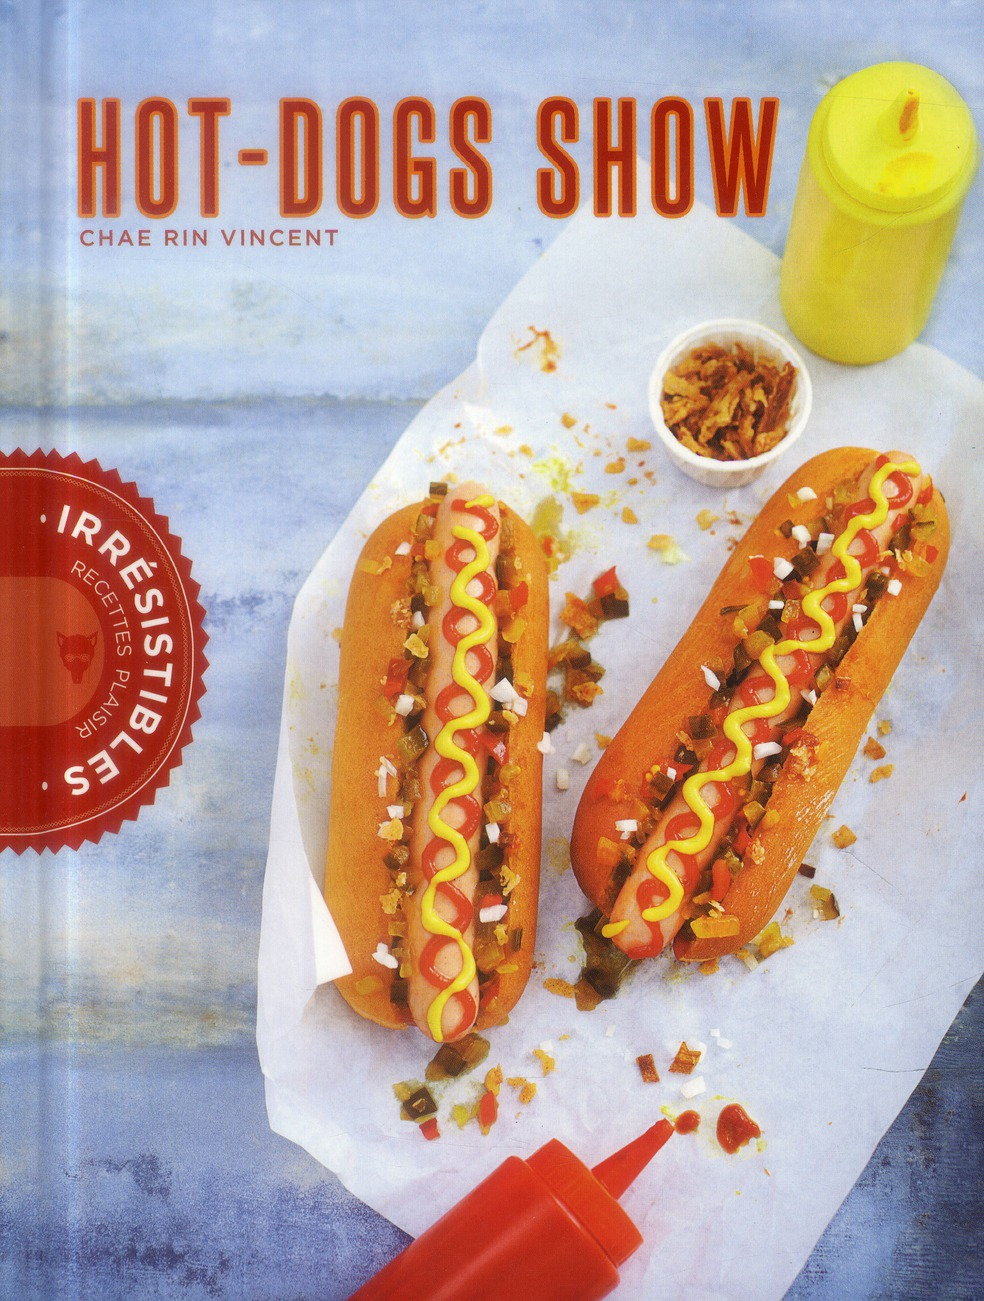 HOT DOGS SHOW